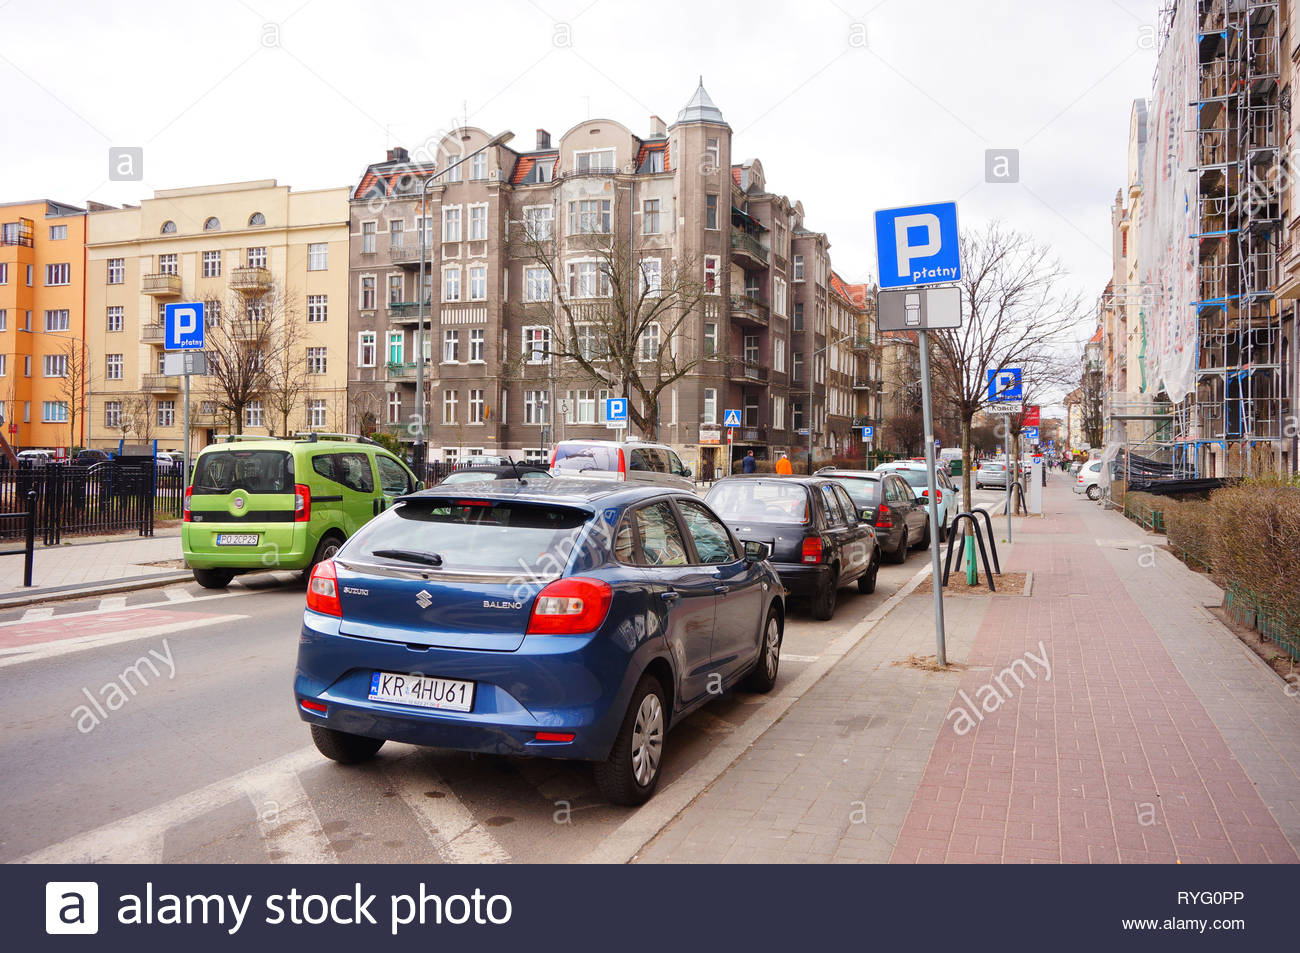 Poznan, Poland - March 8, 2019: Parked blue Suzuki Baleno car false parking by a sidewalk on the Slowackiego street in the city center. - Stock Image